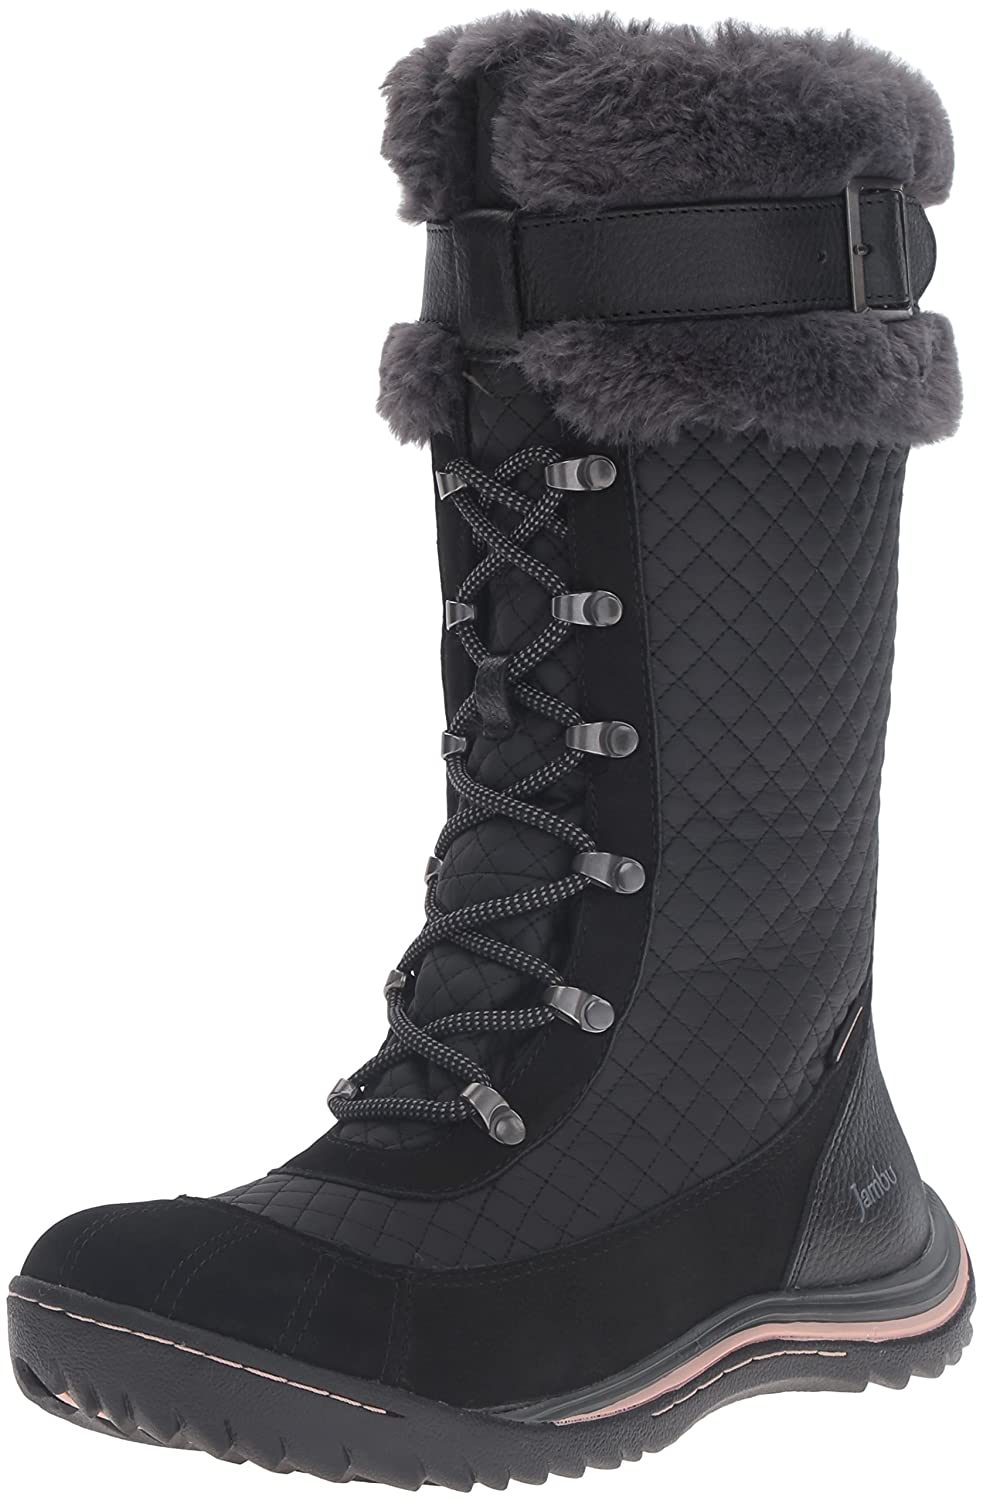 Jambu Women's Williamsburg Snow Boot B019SD5KCC 7 B(M) US|Black